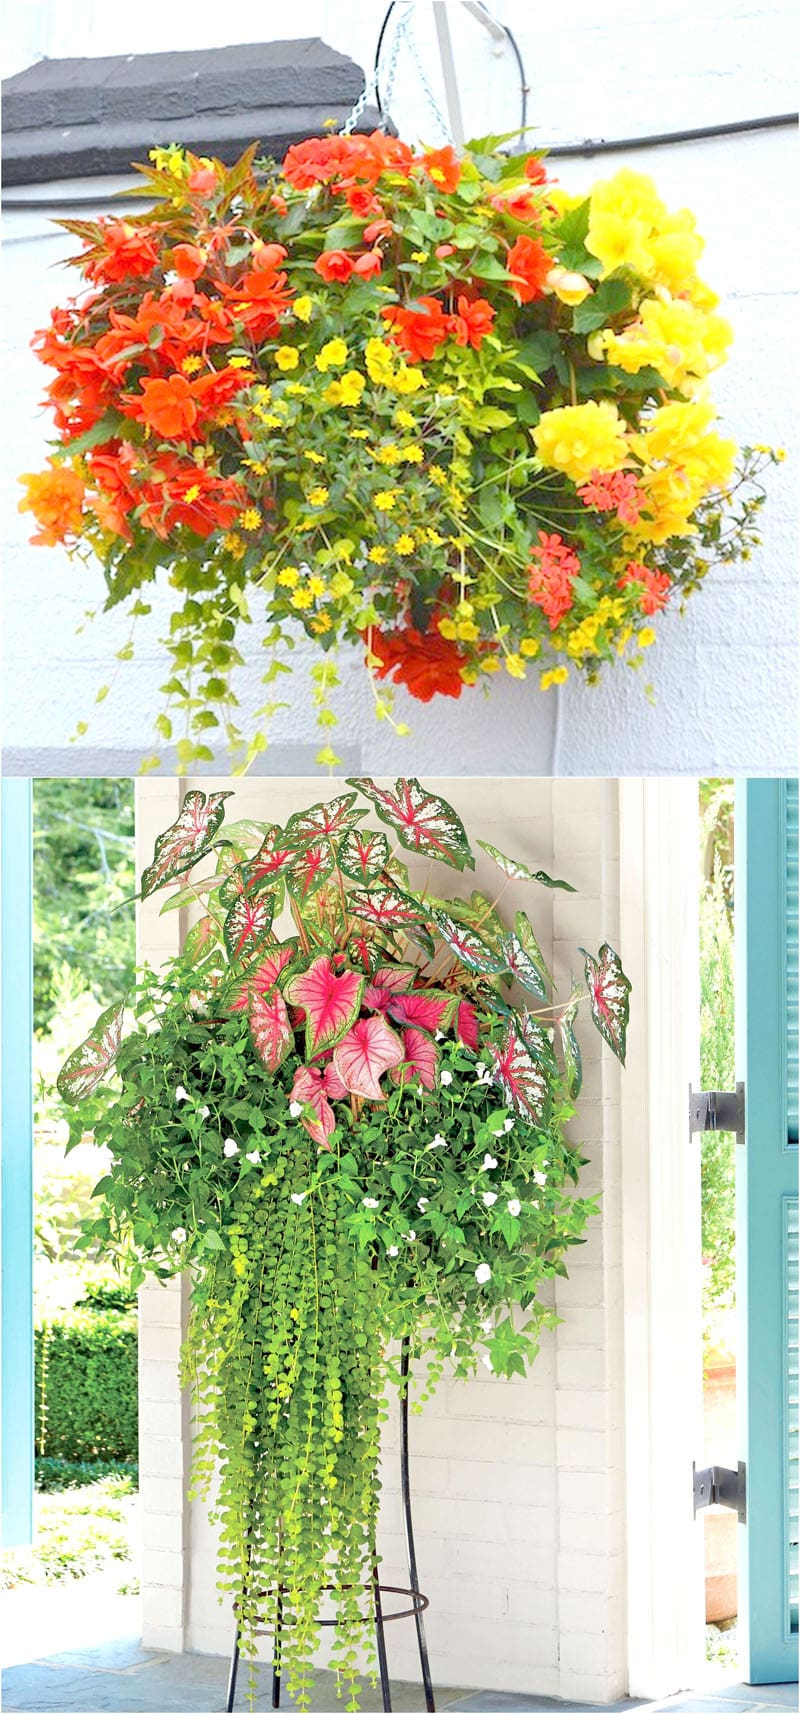 Best Hanging Basket Plants And Flowers To Use For Shade